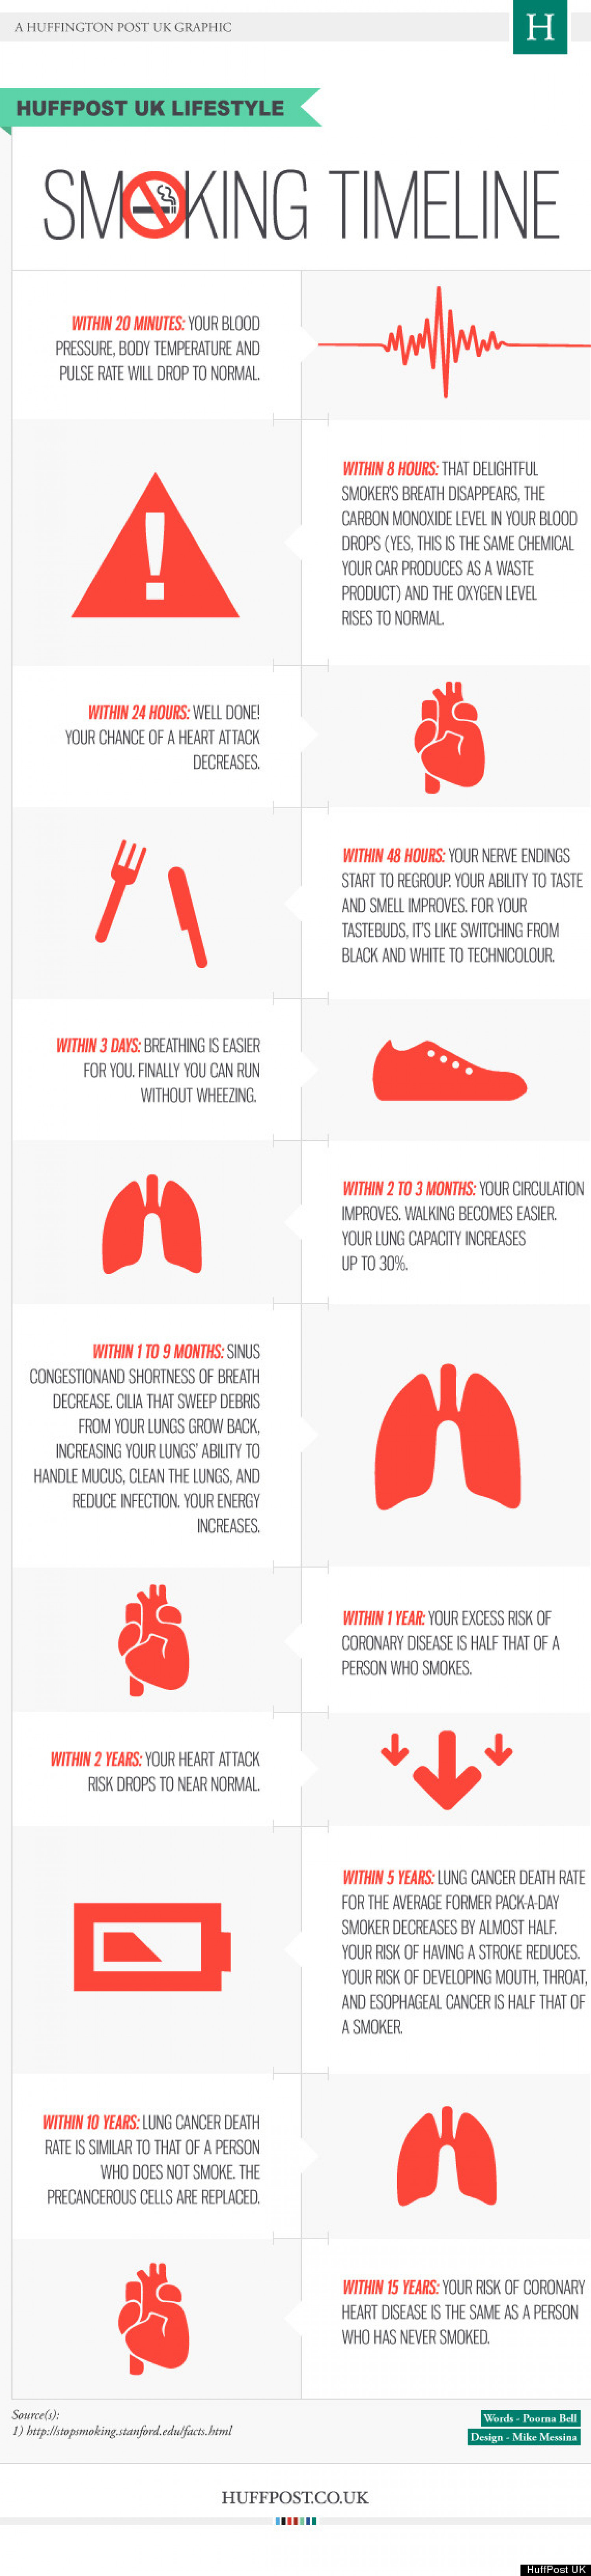 Smoking Timeline Infographic